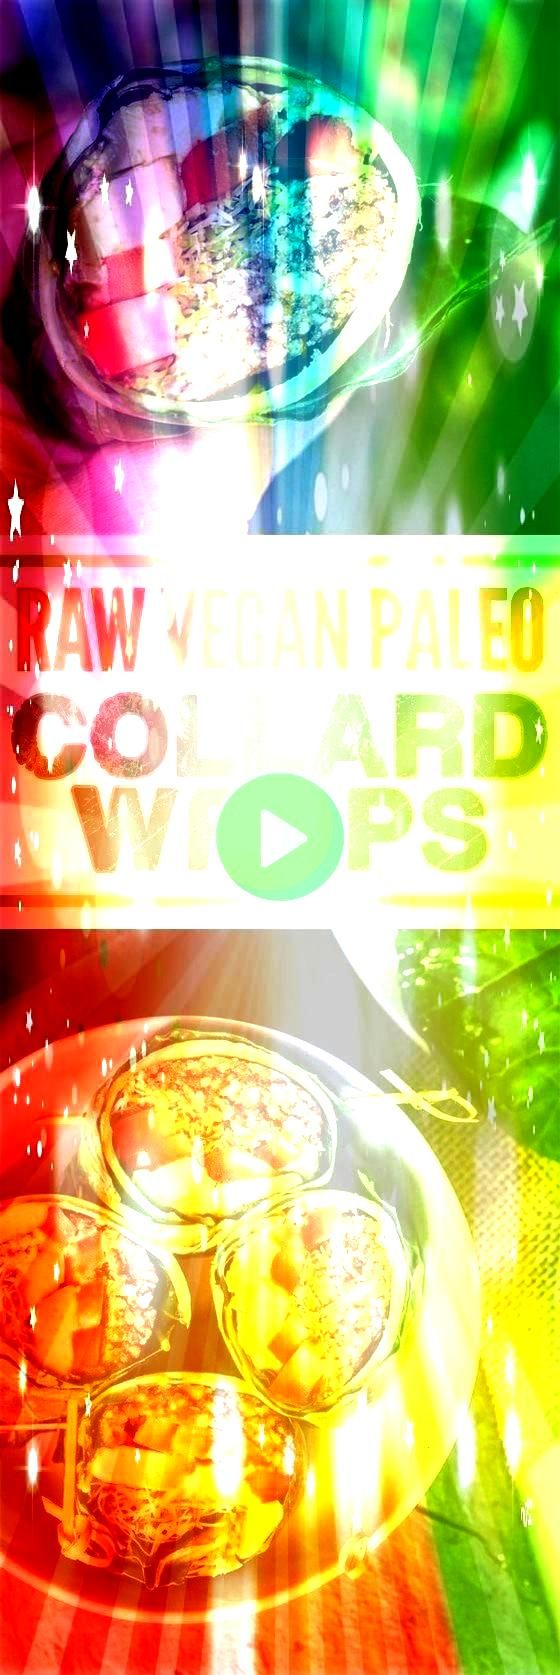 Collard Wraps Raw Vegan Recipes  Collard Wraps Raw Vegan Recipes  Collard Wraps Raw zucchini pasta salad with vegan sunflower cheese sauce Easy to make healthy courgette...